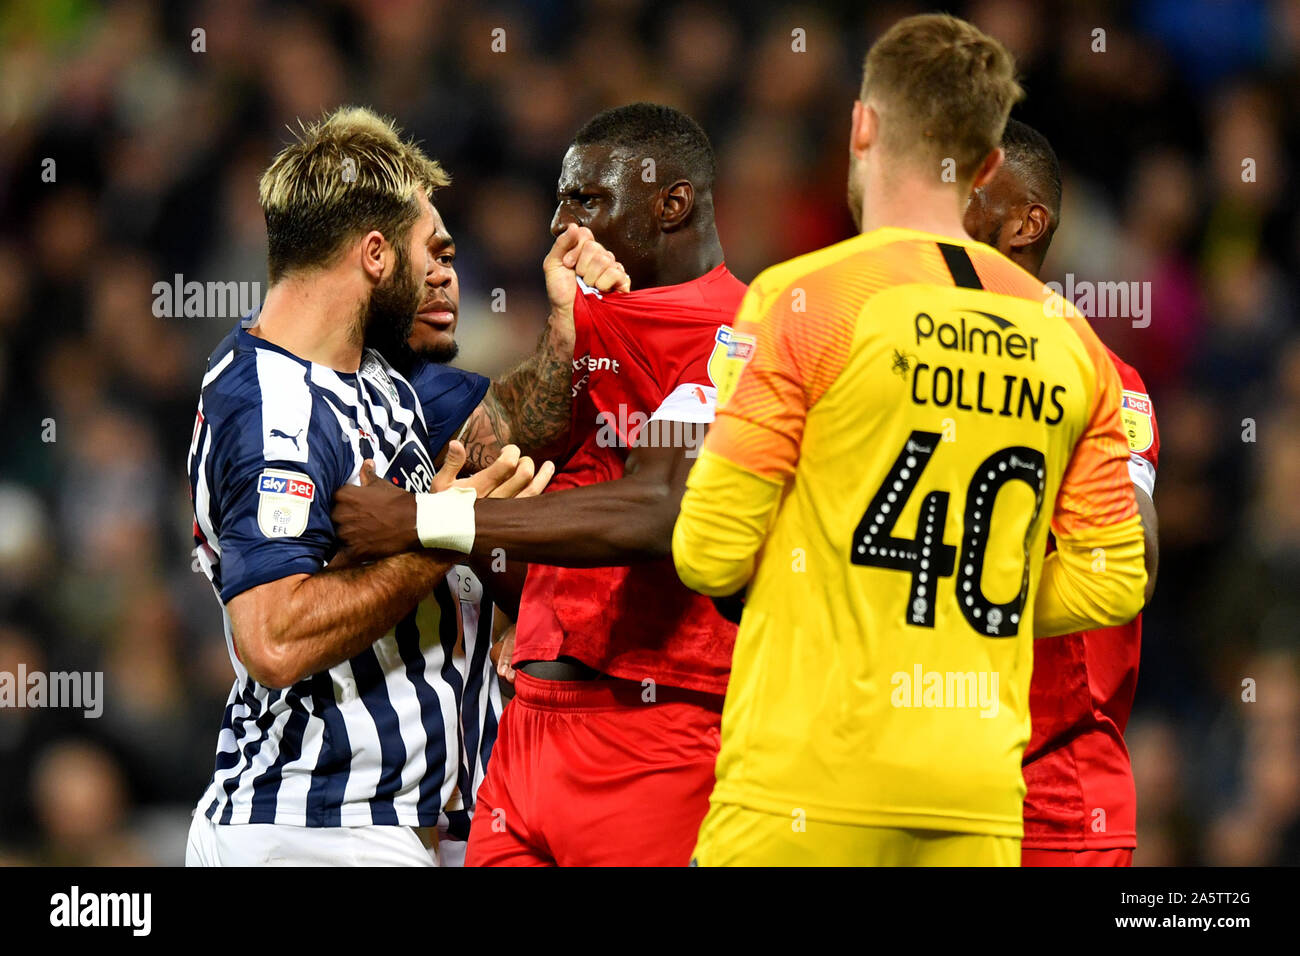 West Bromwich Albion S Charlie Austin Exchanges Words With Barnsley S Bambo Diaby During The Sky Bet Championship Match At The Hawthorns West Bromwich Stock Photo Alamy